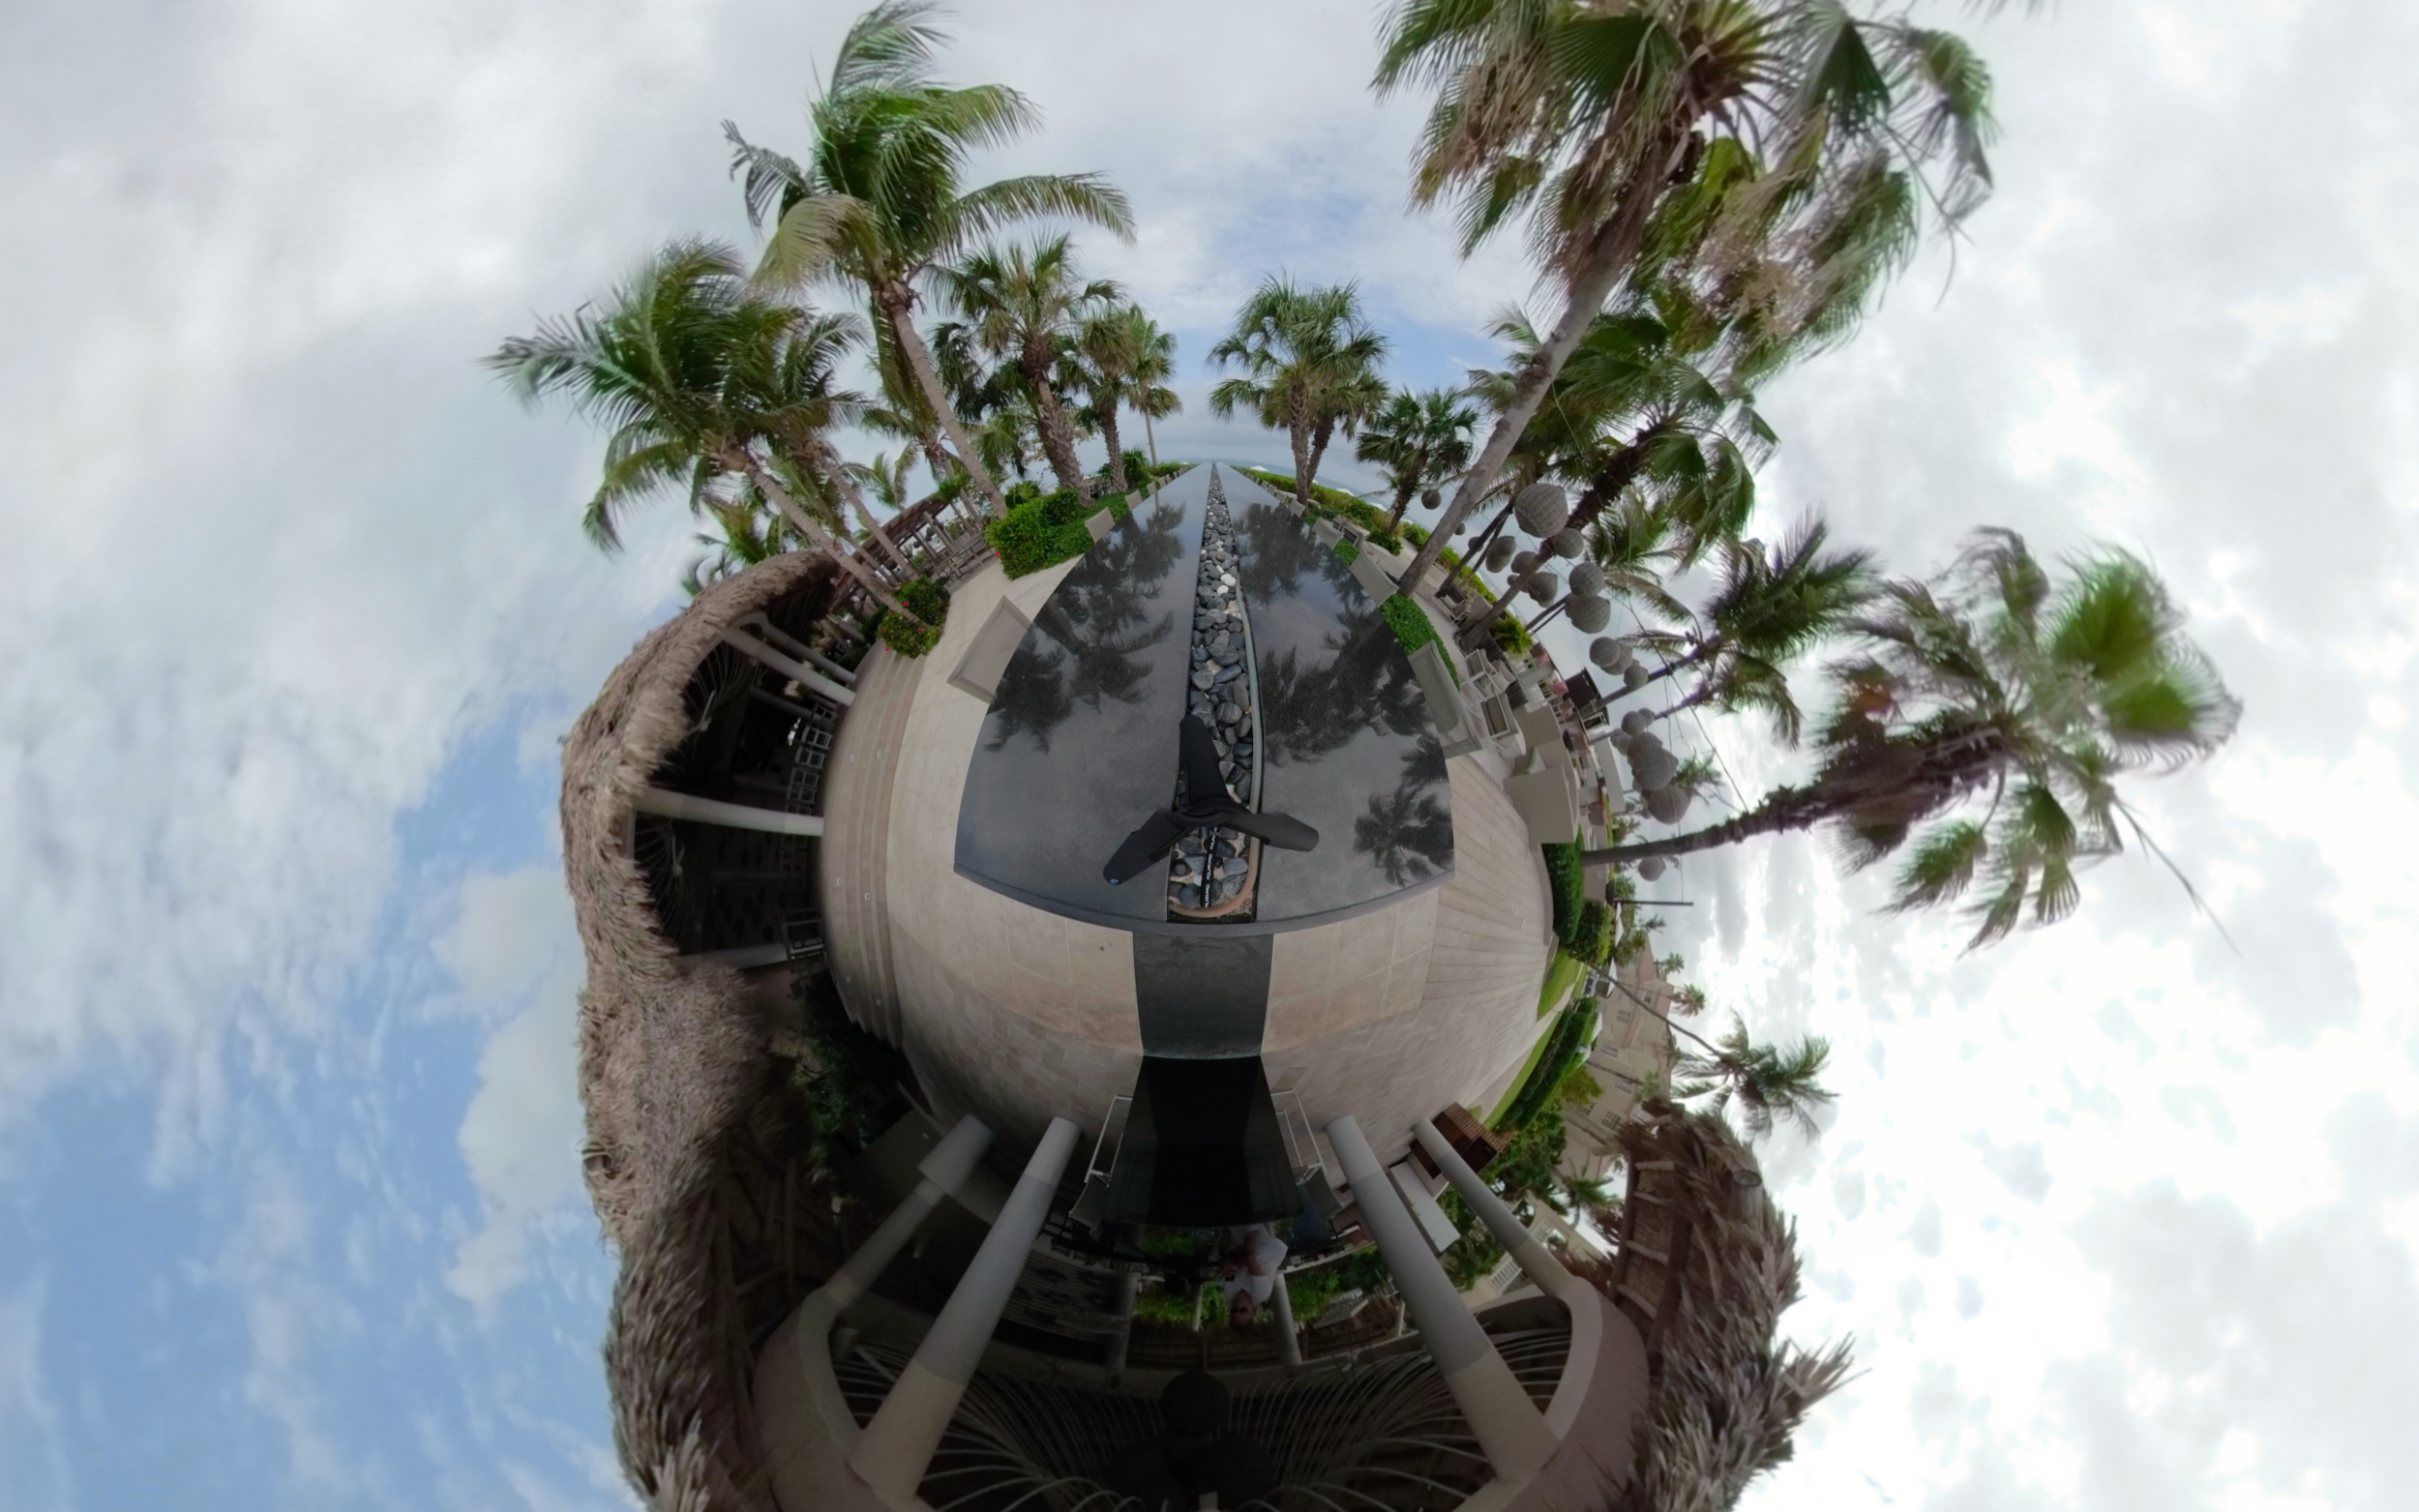 Grace Bay, Longest Bar in Caribbean - Click for VR 360